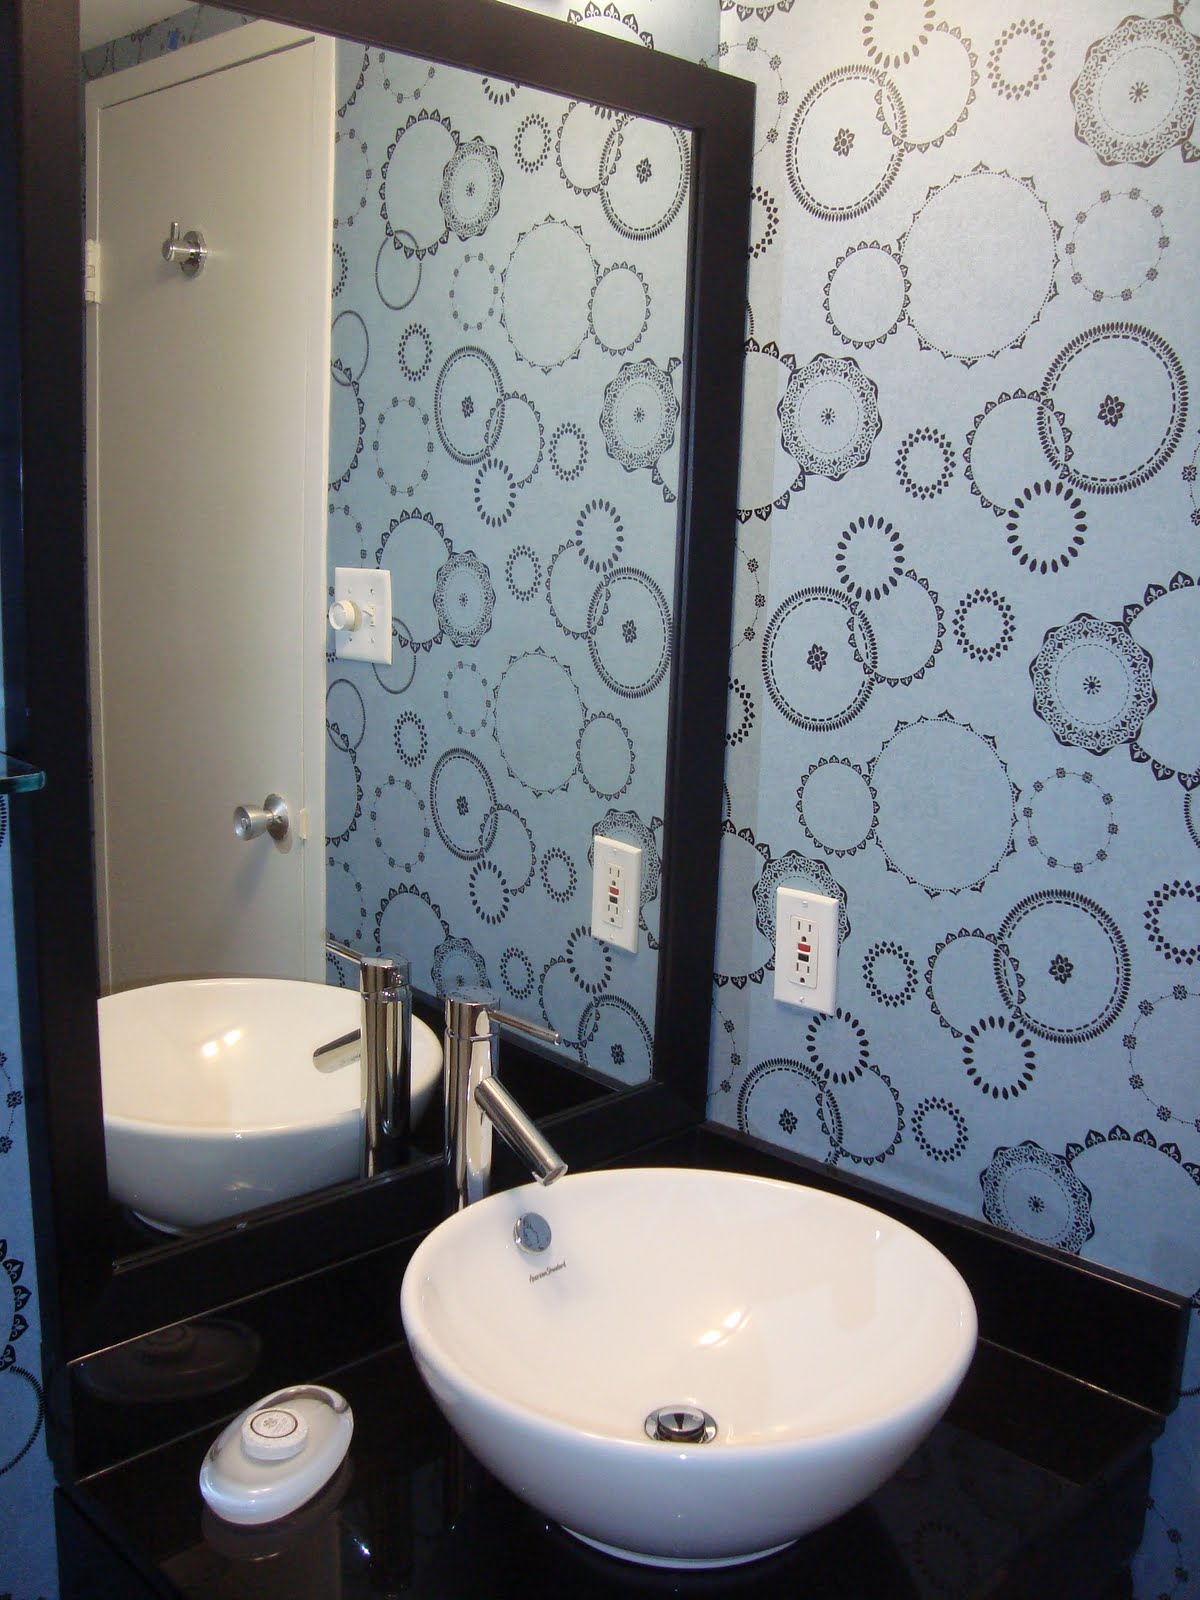 Bathroom with wallpaper ideas